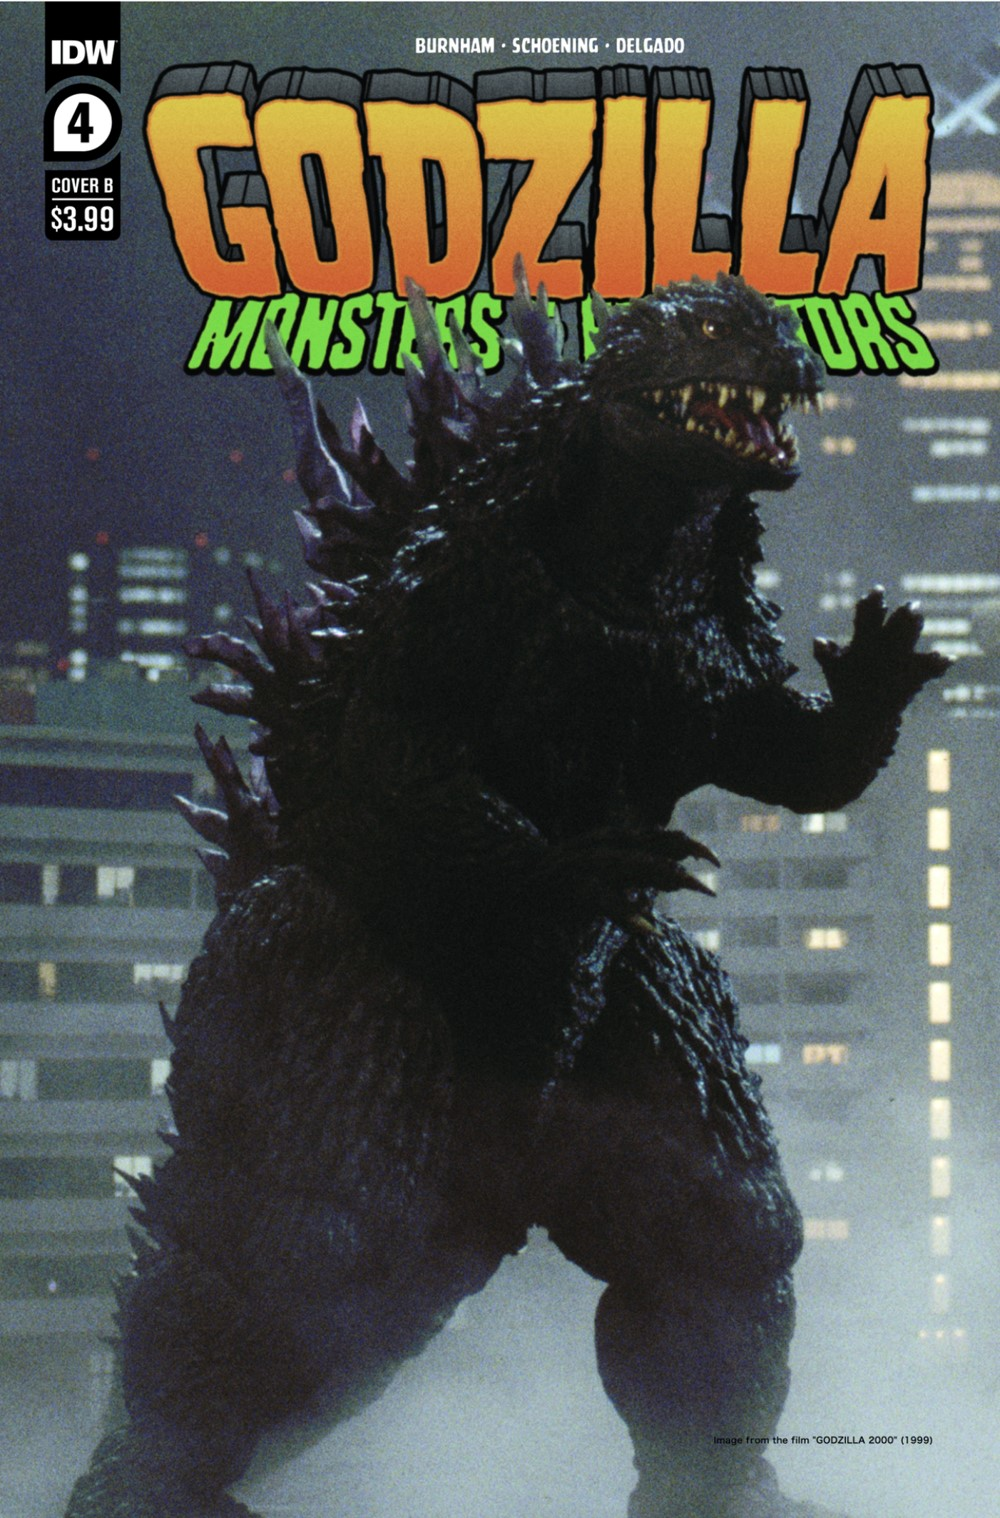 GODZILLA-MONSTERS-PROTECTORS-4-COVER-B ComicList: IDW Publishing New Releases for 07/21/2021